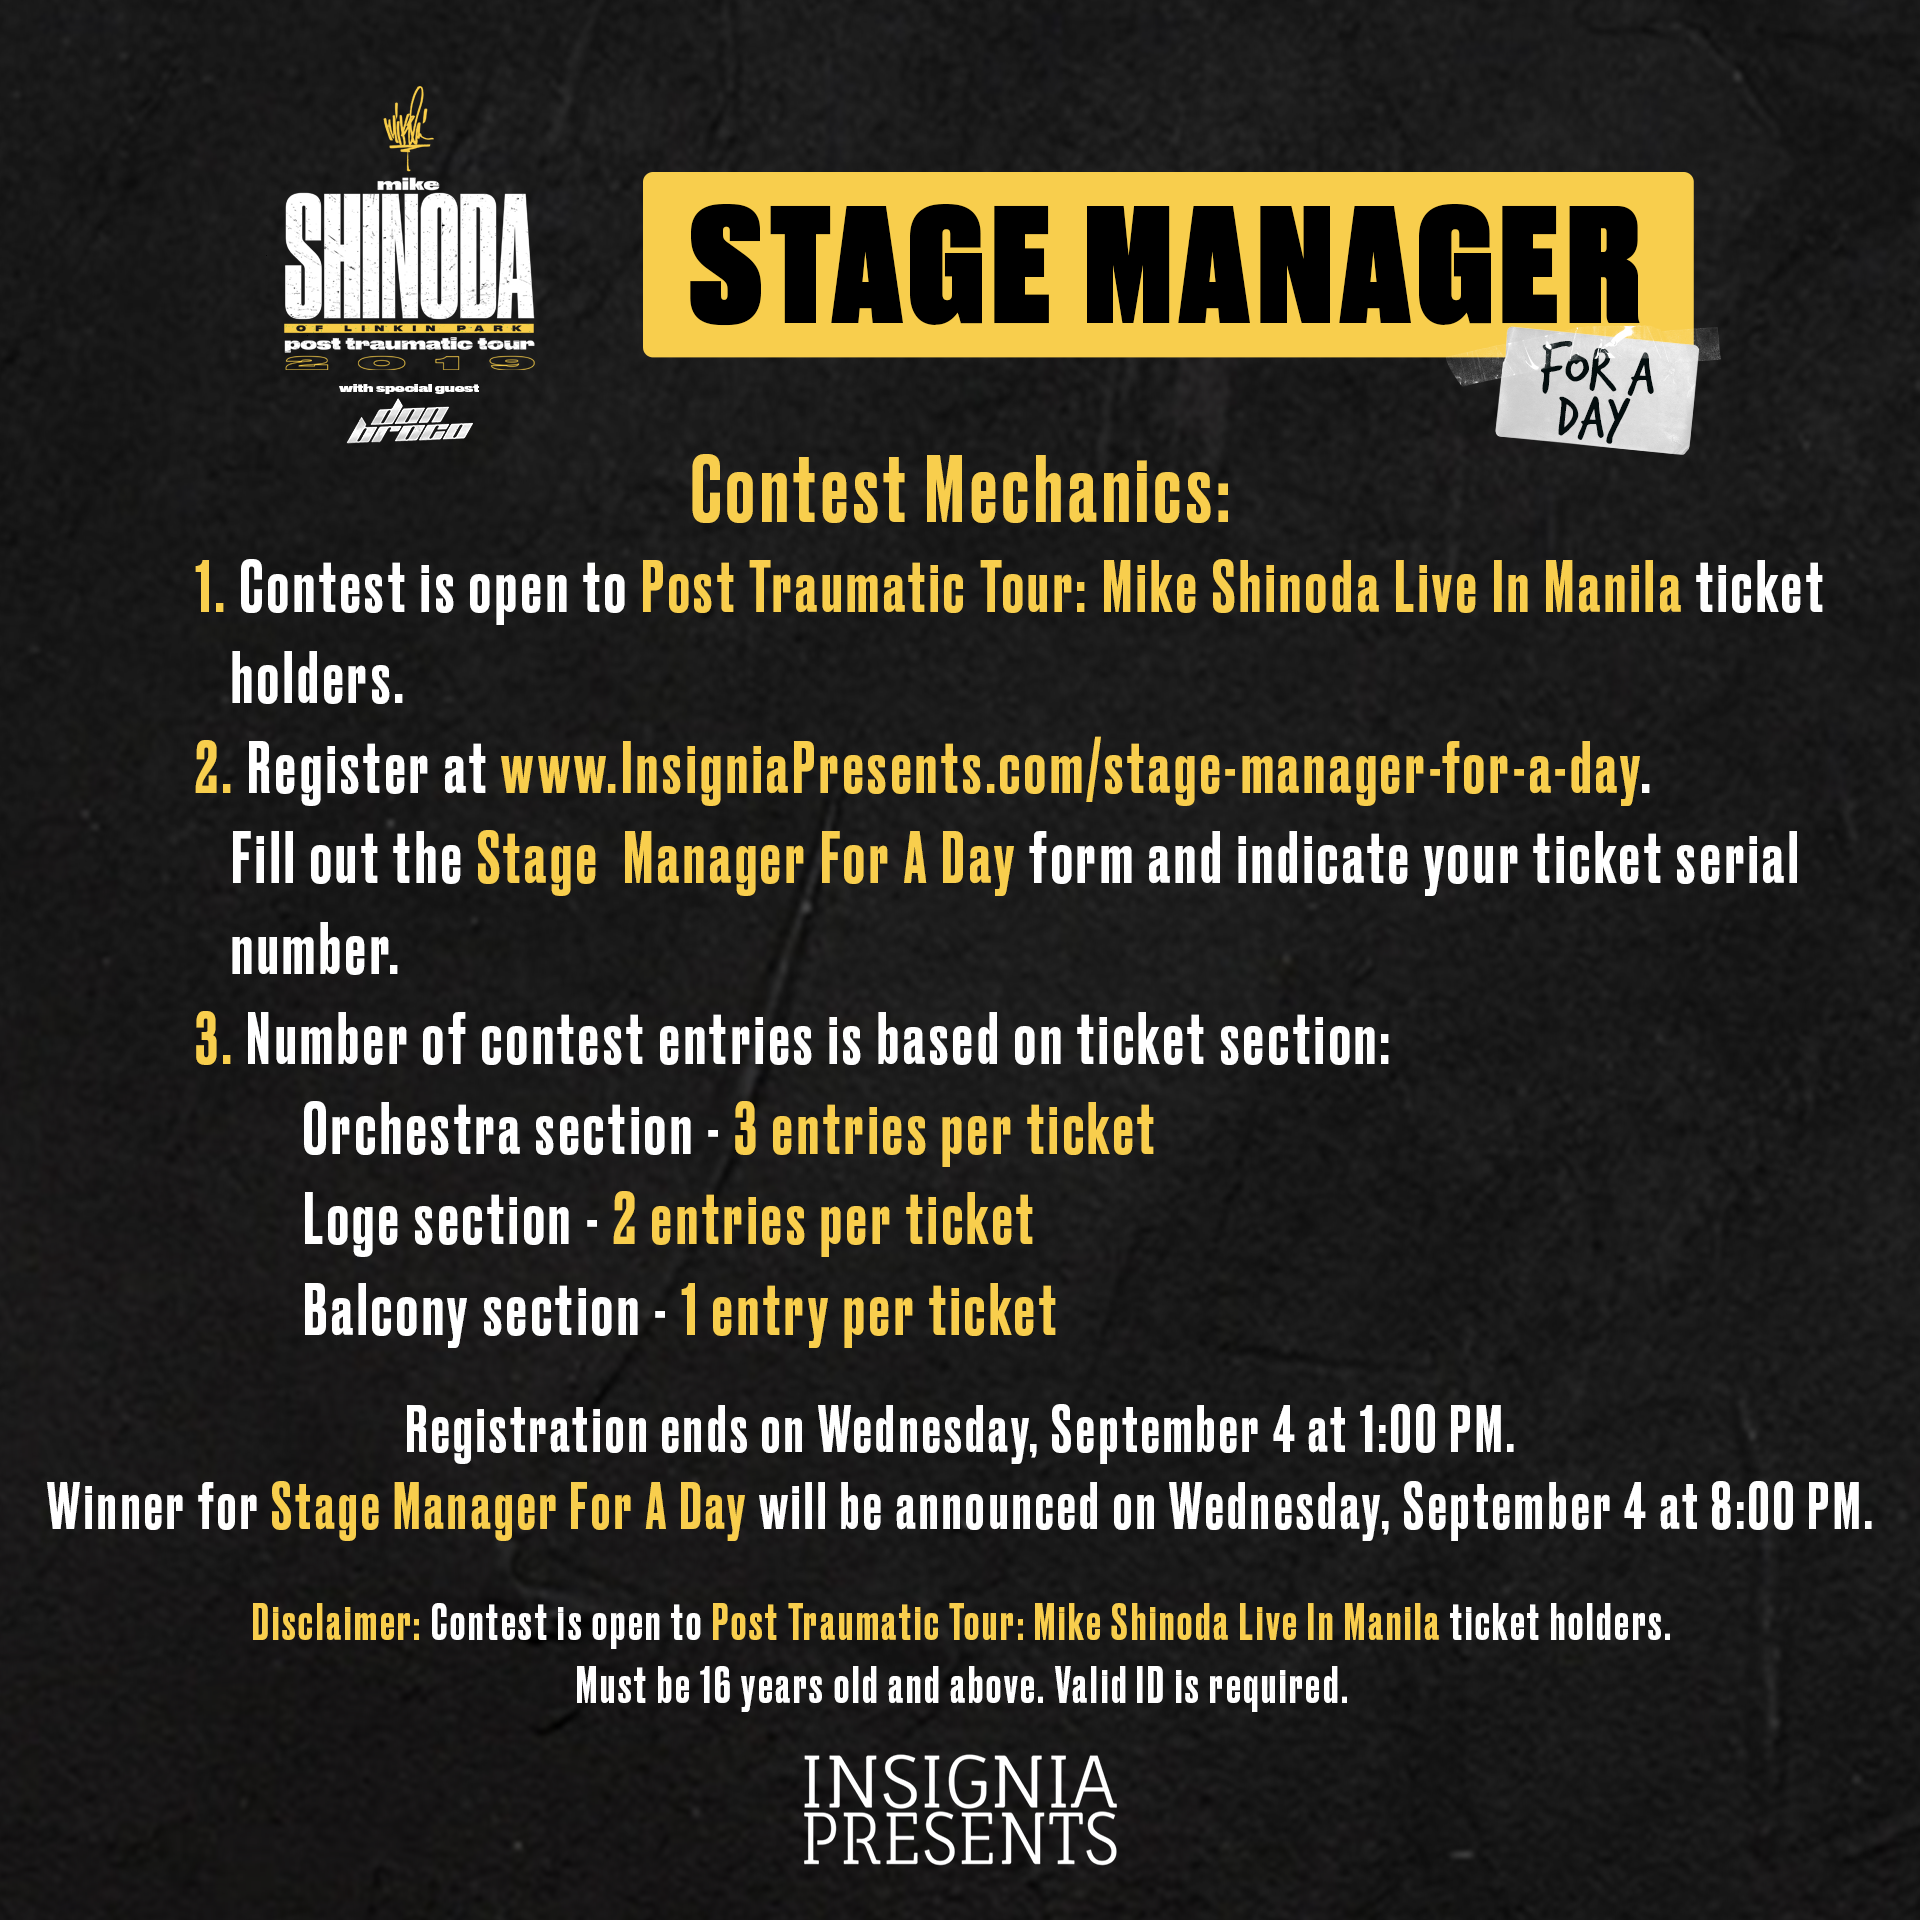 StageManagerForADay-ContestMechanics-MikeShinoda-09.06.19-NewFrontierTheater-ManilaPhilippines-v3.png